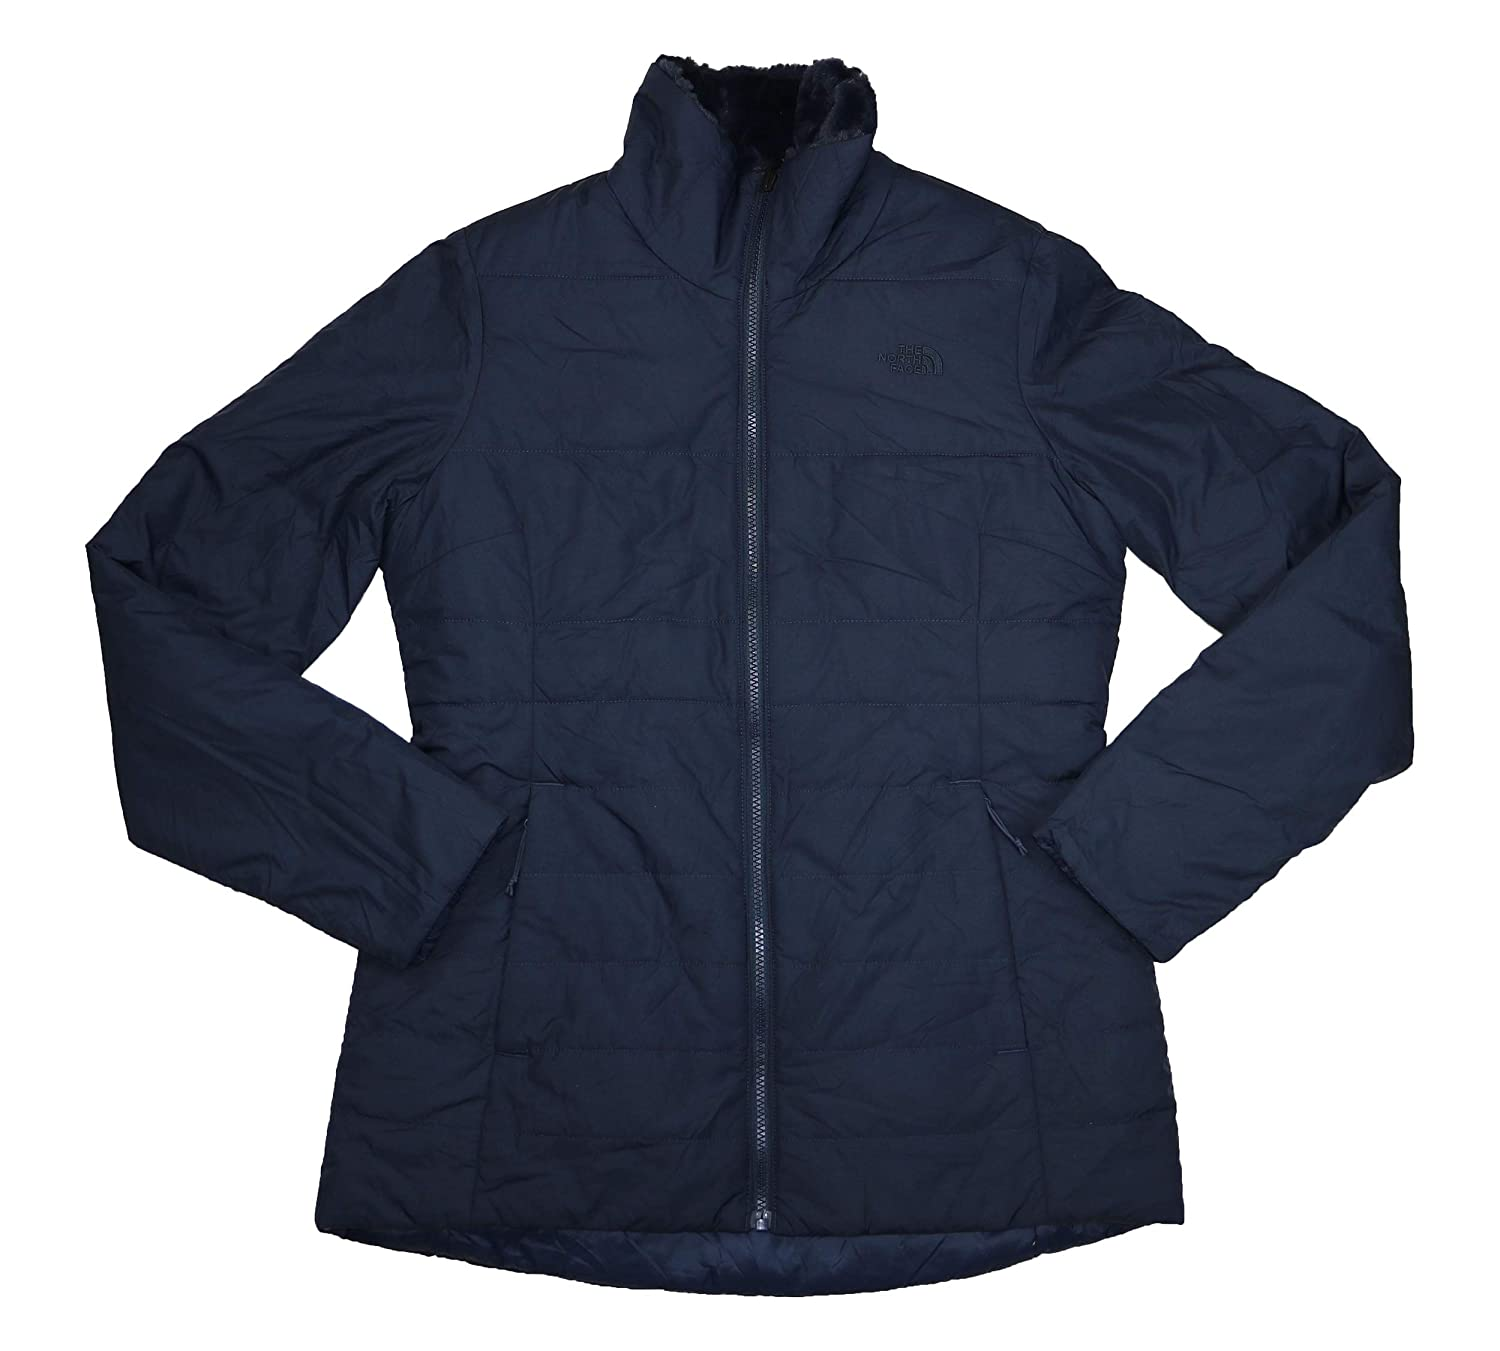 7a1f661a8 The North Face Women's Harway Reversible Puffer Coat, Blue, Medium ...